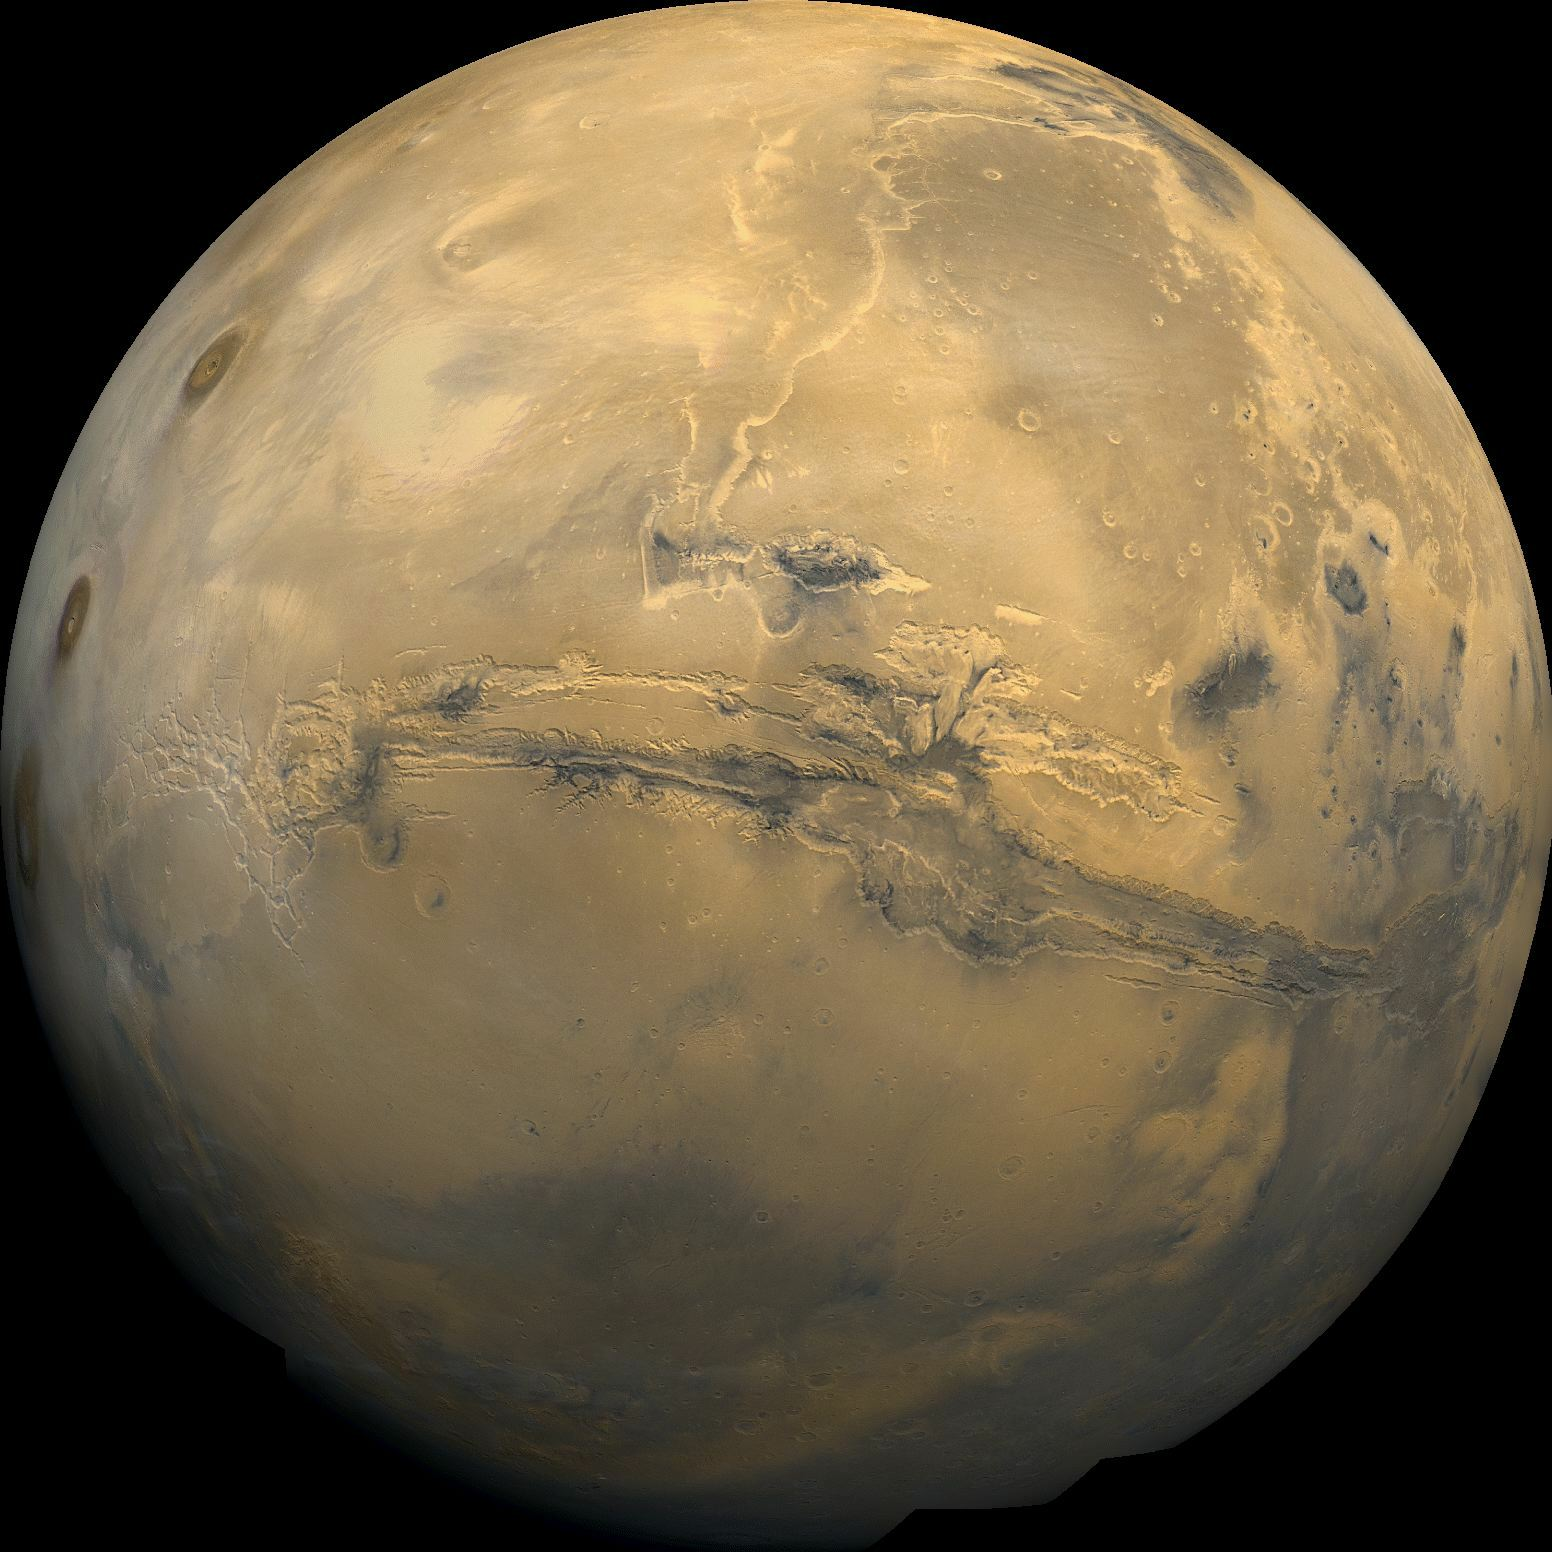 http://upload.wikimedia.org/wikipedia/commons/5/56/Mars_Valles_Marineris.jpeg